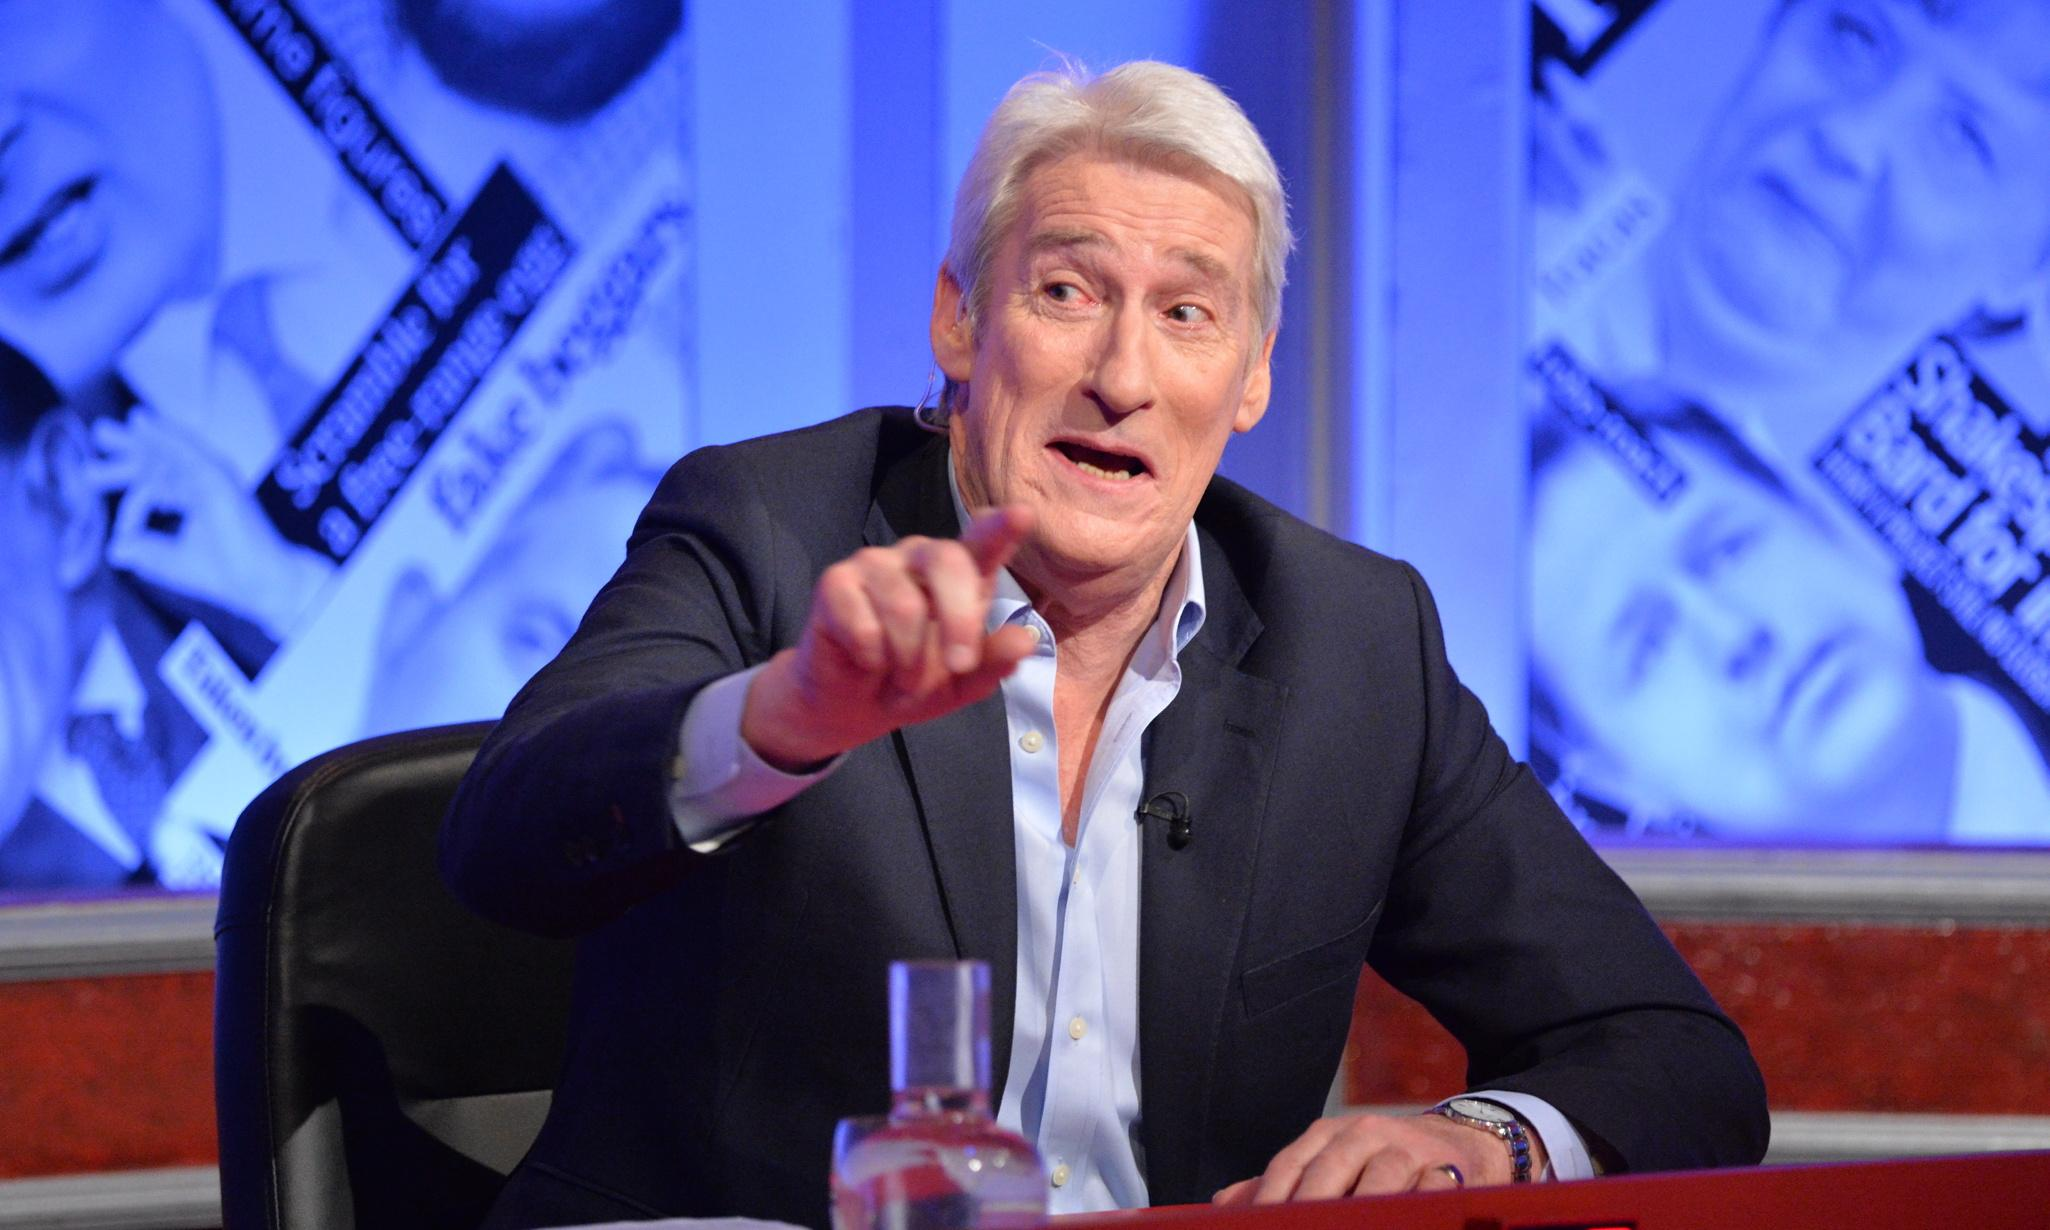 Let's help Paxman tackle the litter louts